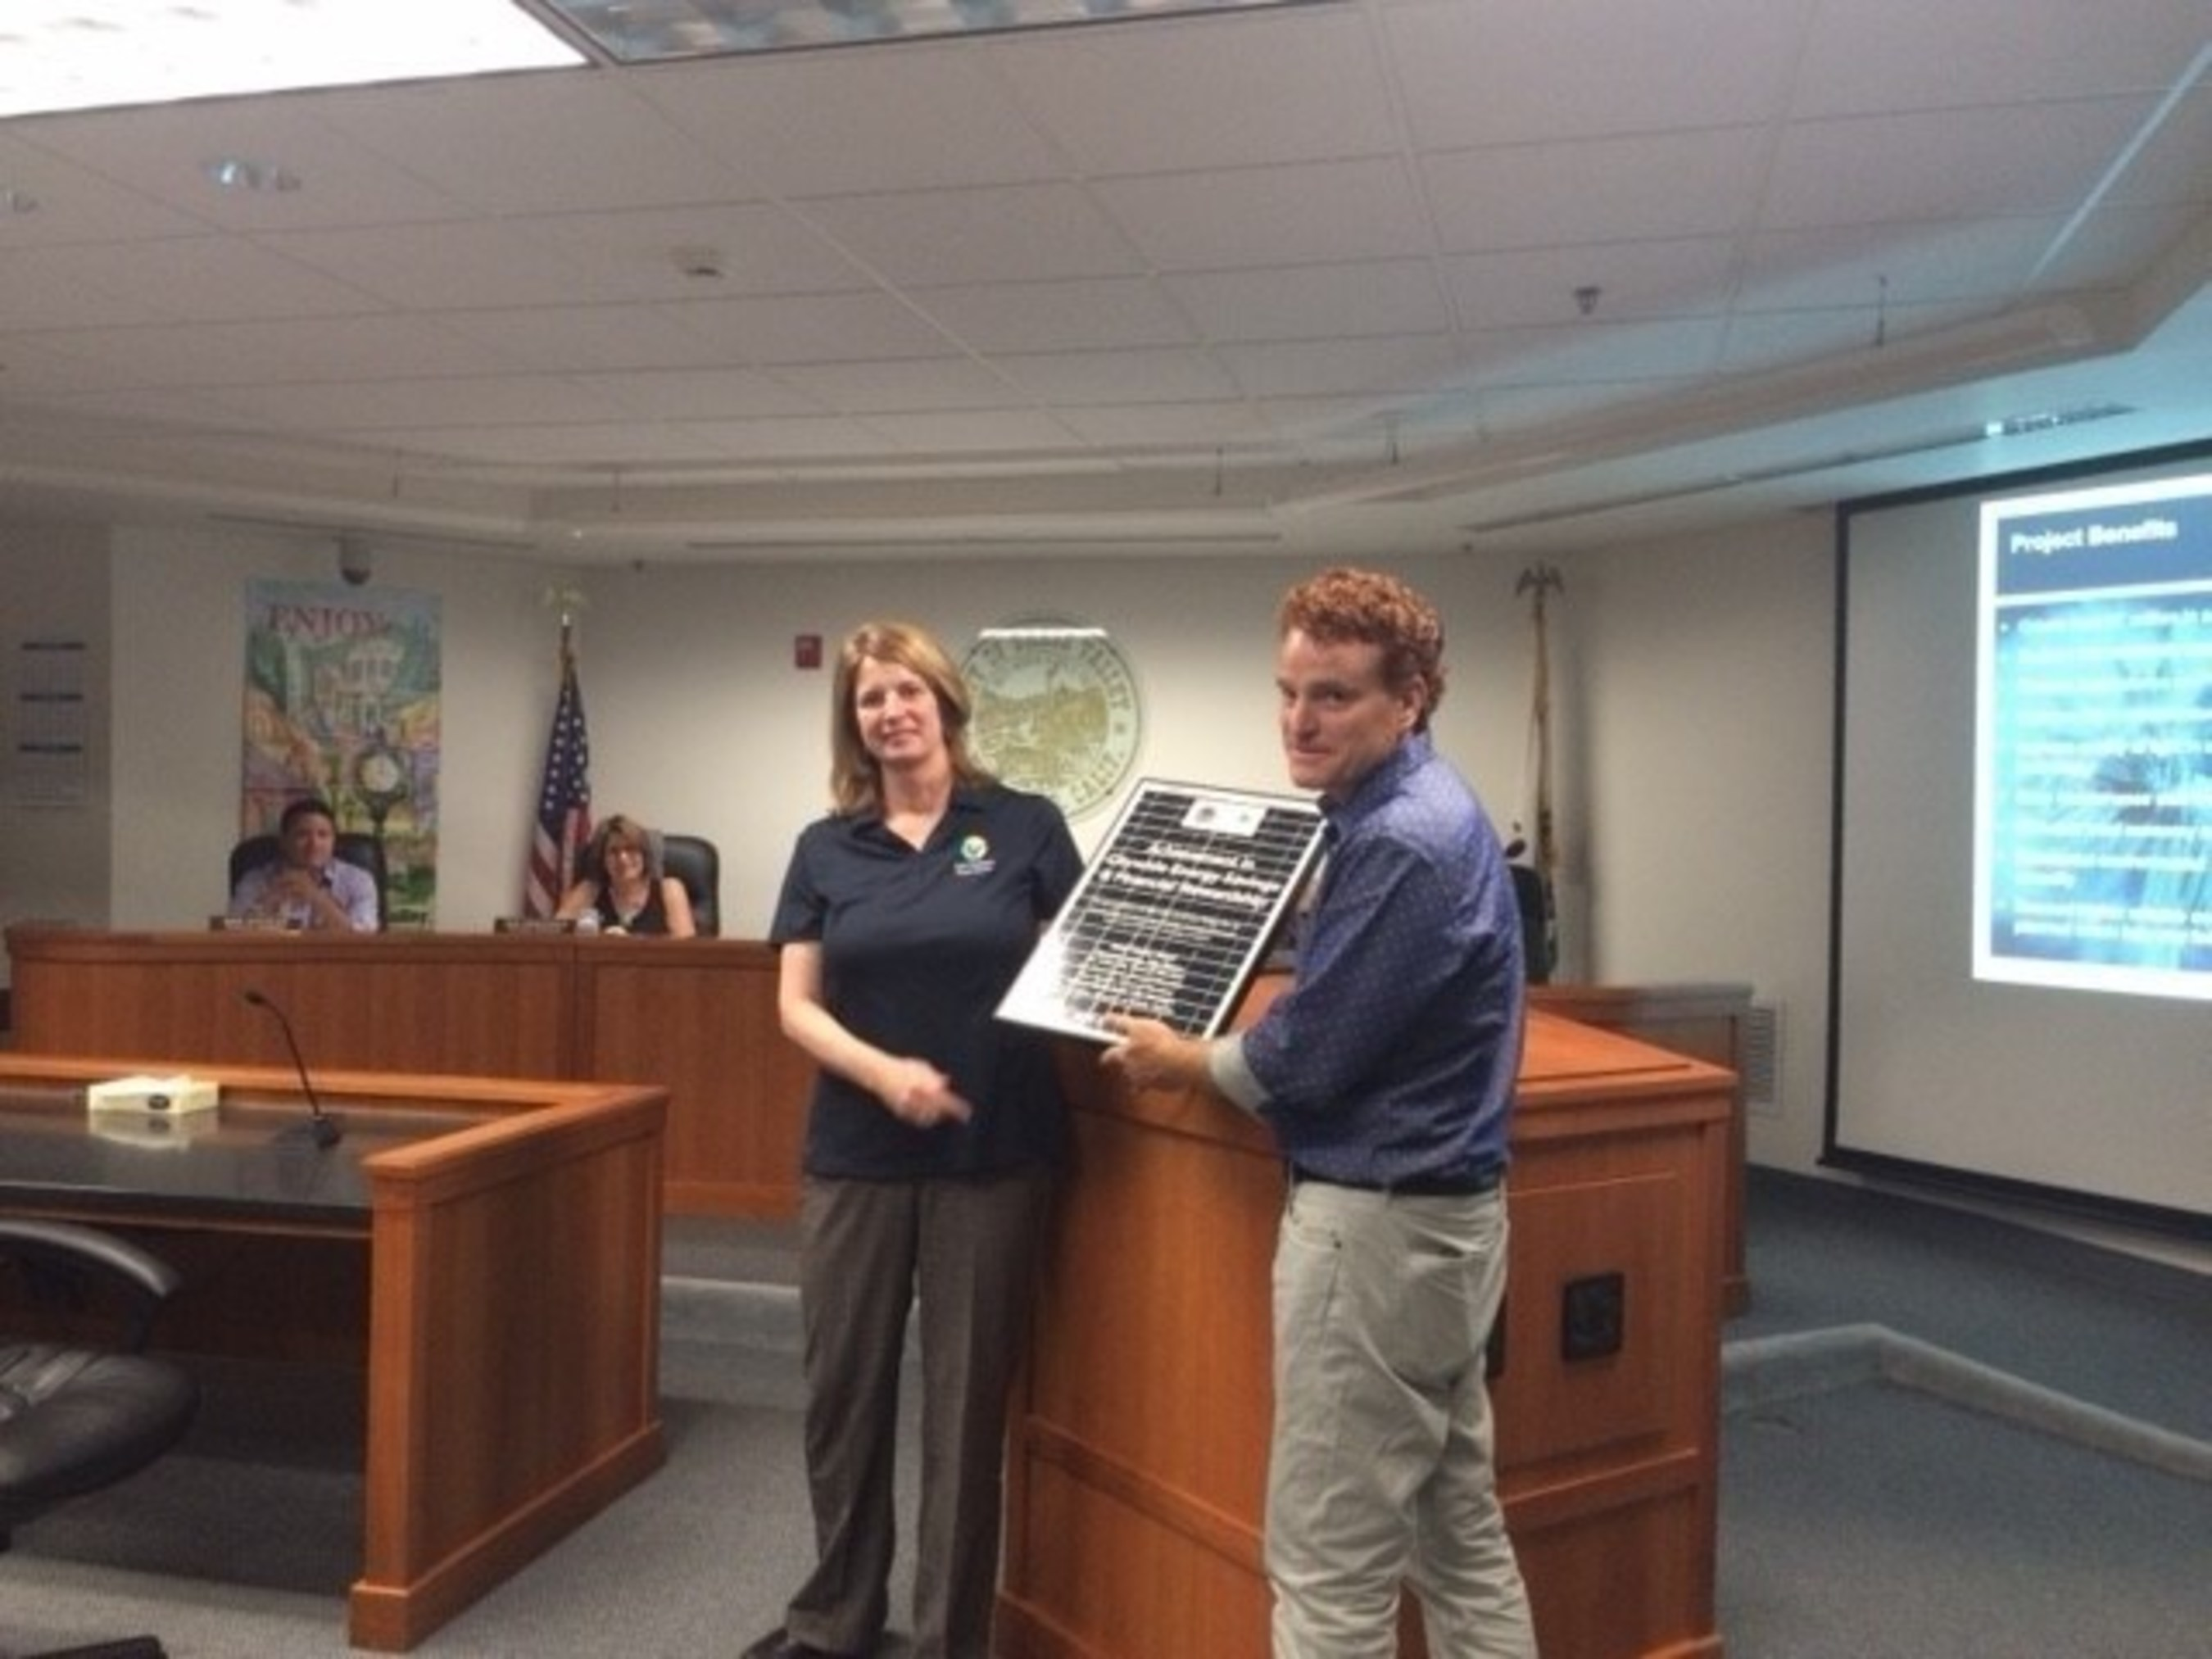 City of Grass Valley receives recognition for achievements in sustainability from OpTerra Energy Services at the June 28th City Council Meeting.